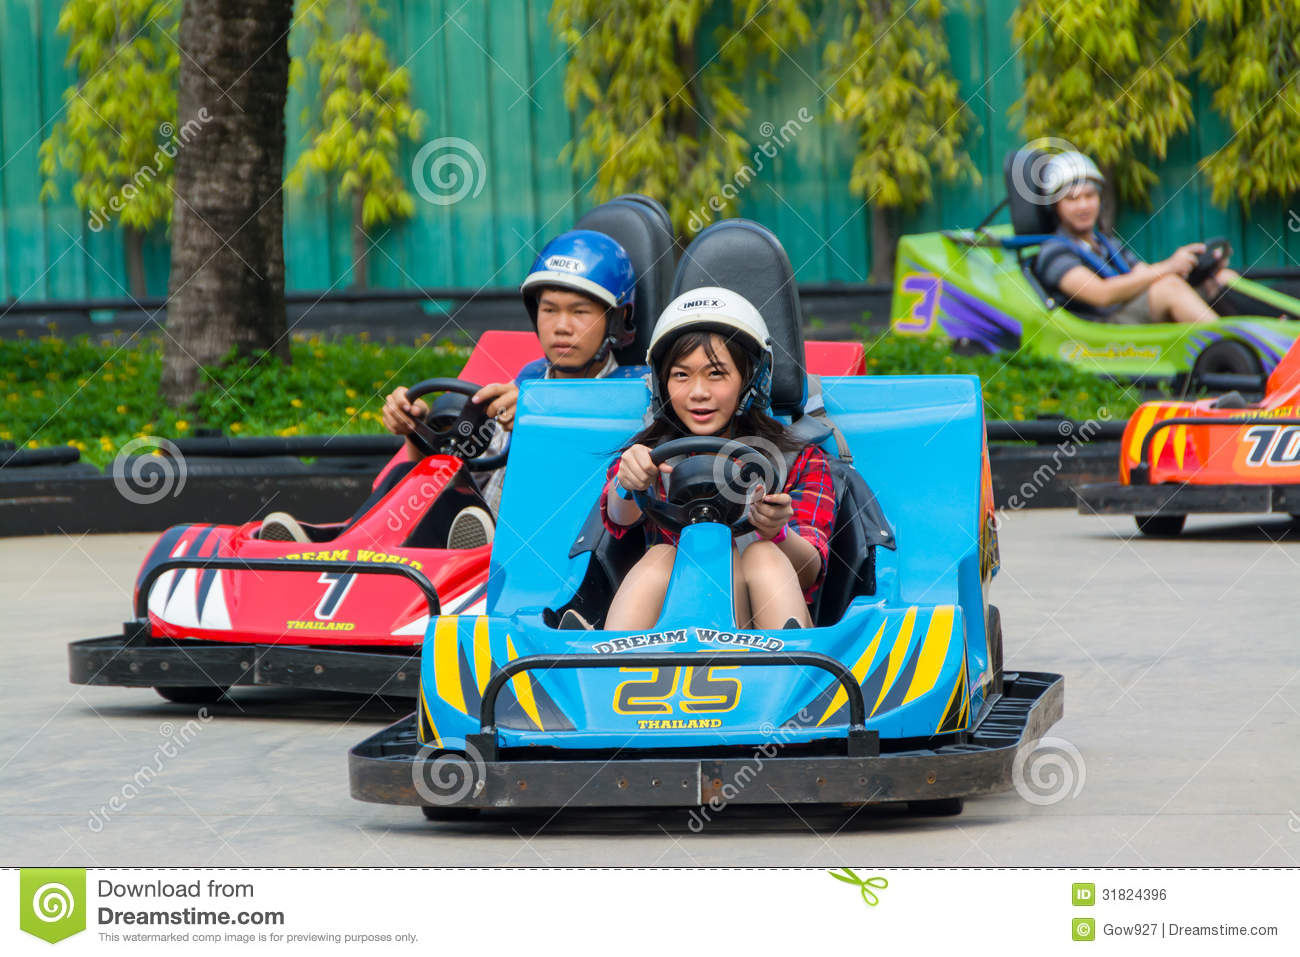 kart thailand Go kart Race In Dream World, Thailand Editorial Photo   Image of